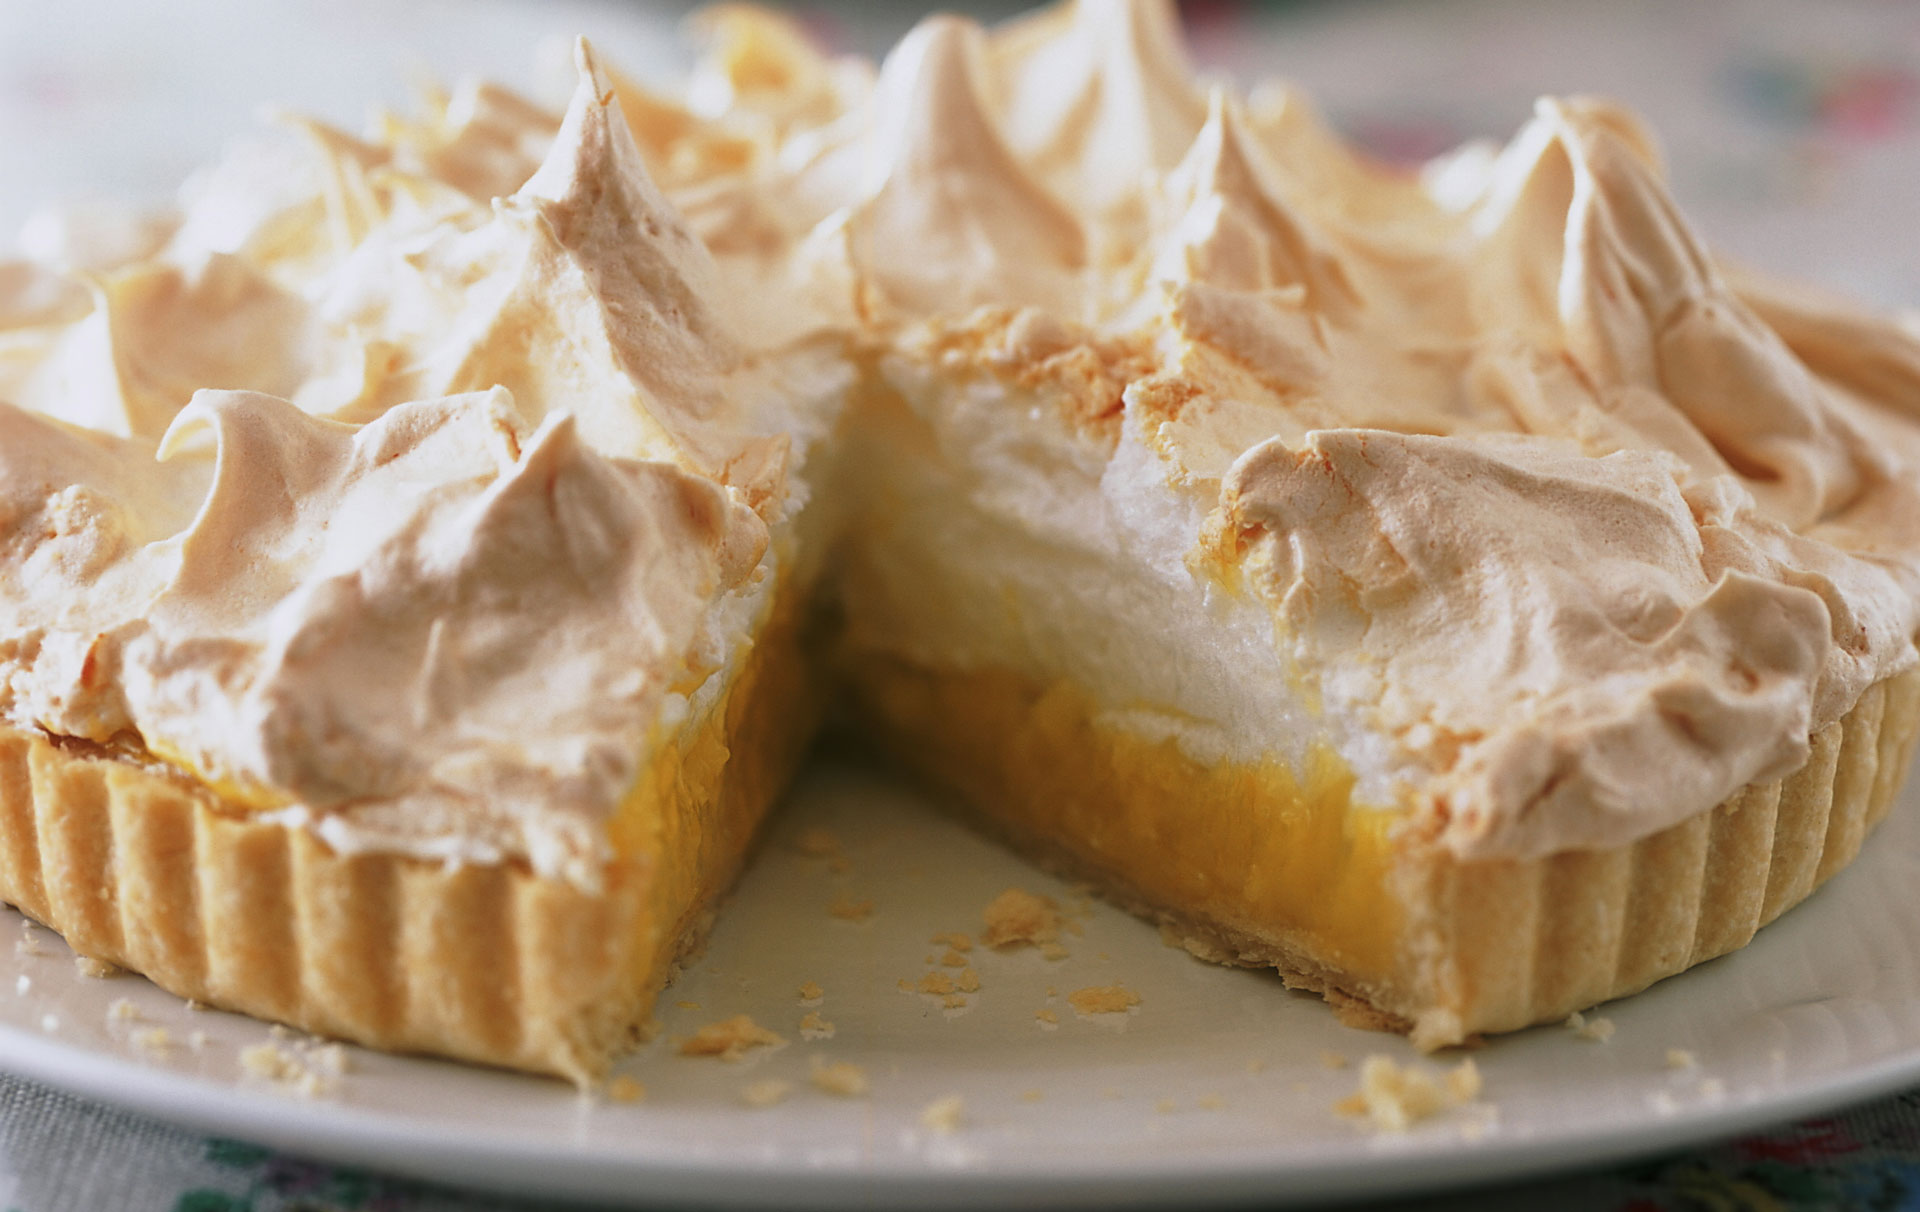 Quick Lemon Meringue Pie Dessert Recipes Goodtoknow